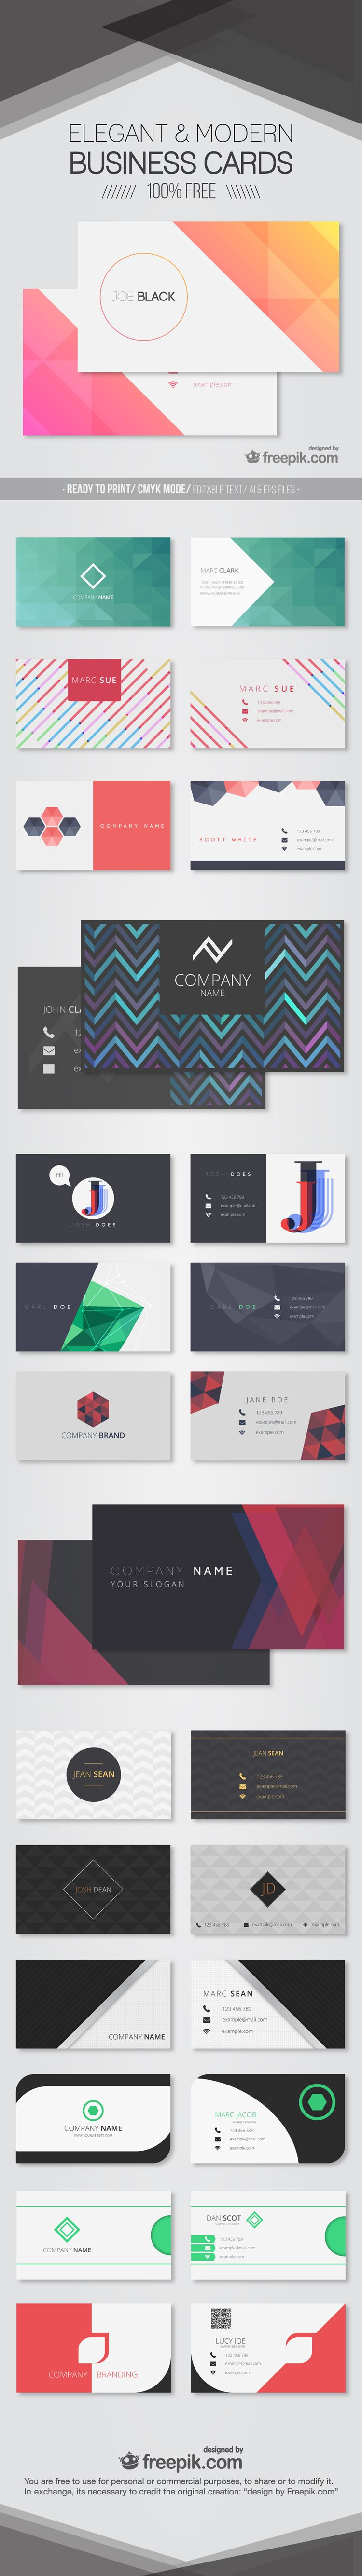 30 free modern business card templates cartes de visita visita e 30 free modern business card templates reheart Gallery